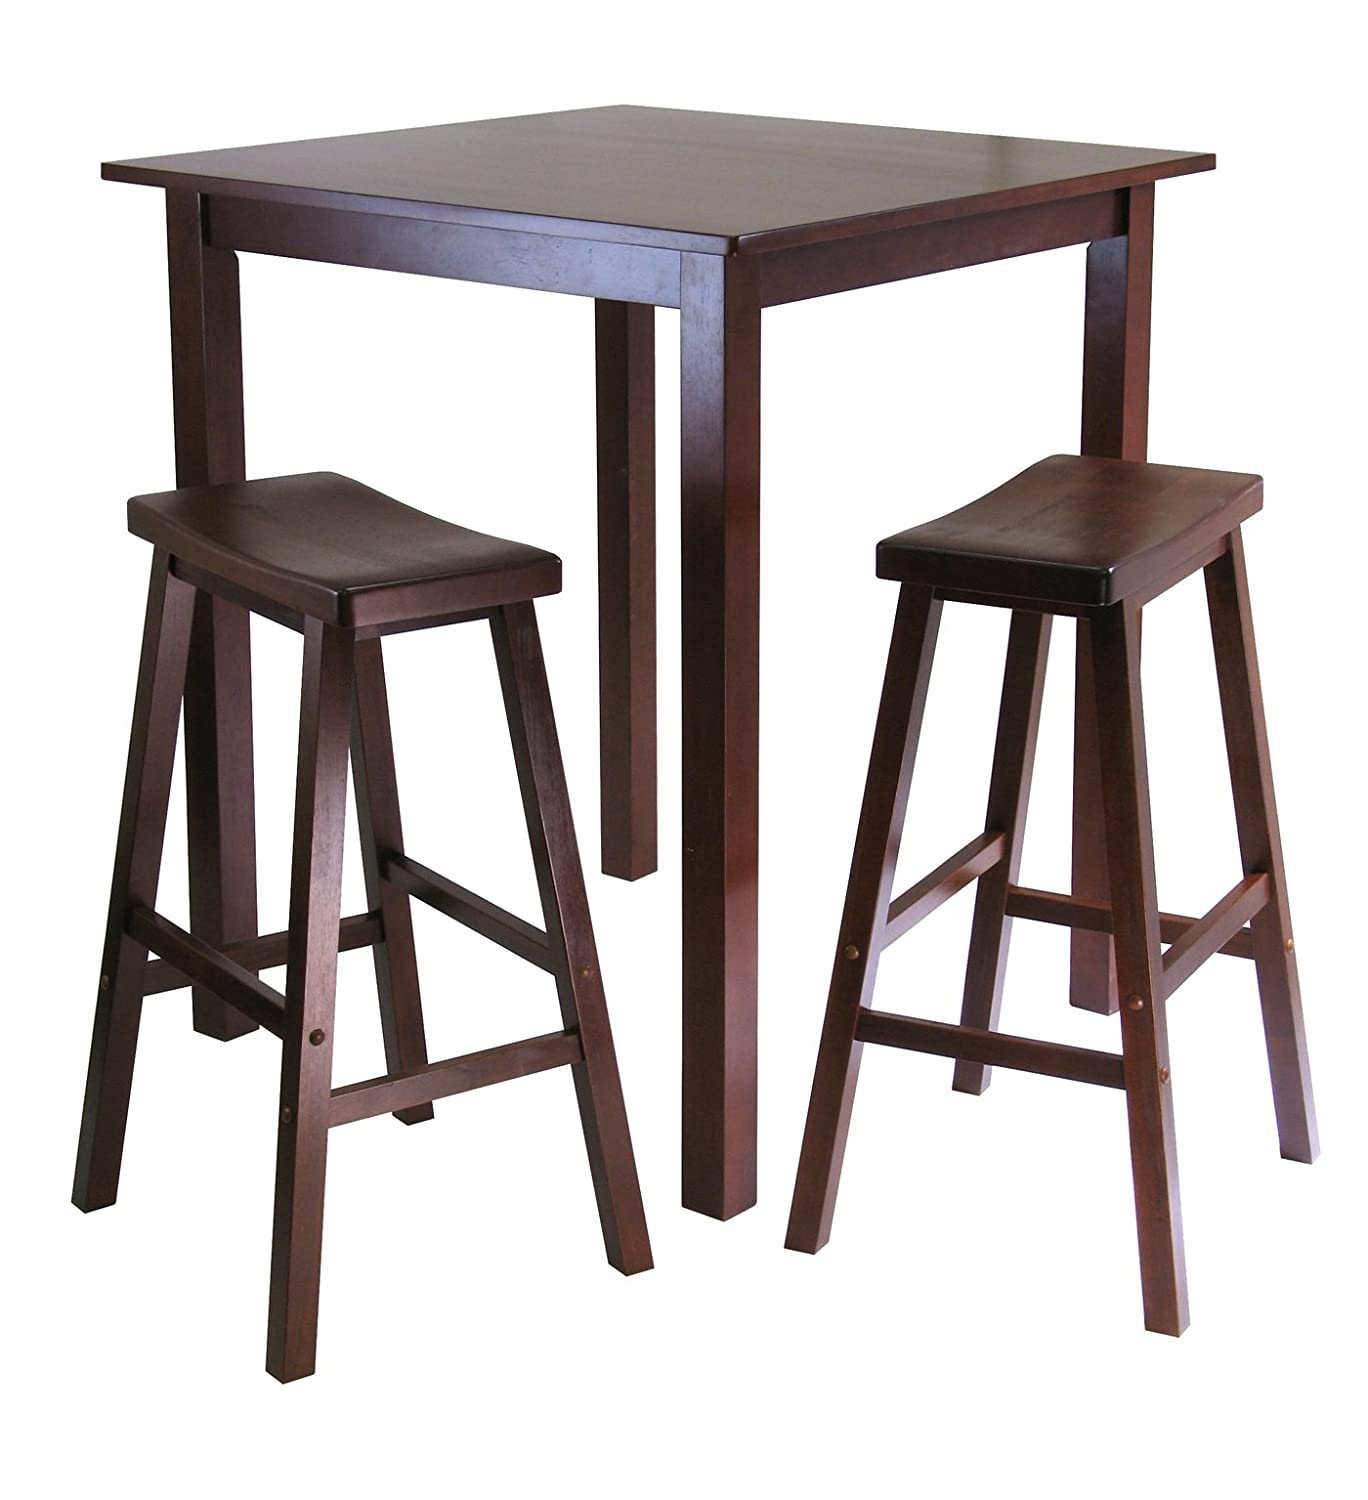 Amazon Winsome s Parkland 3 Piece Square High Pub Table Set